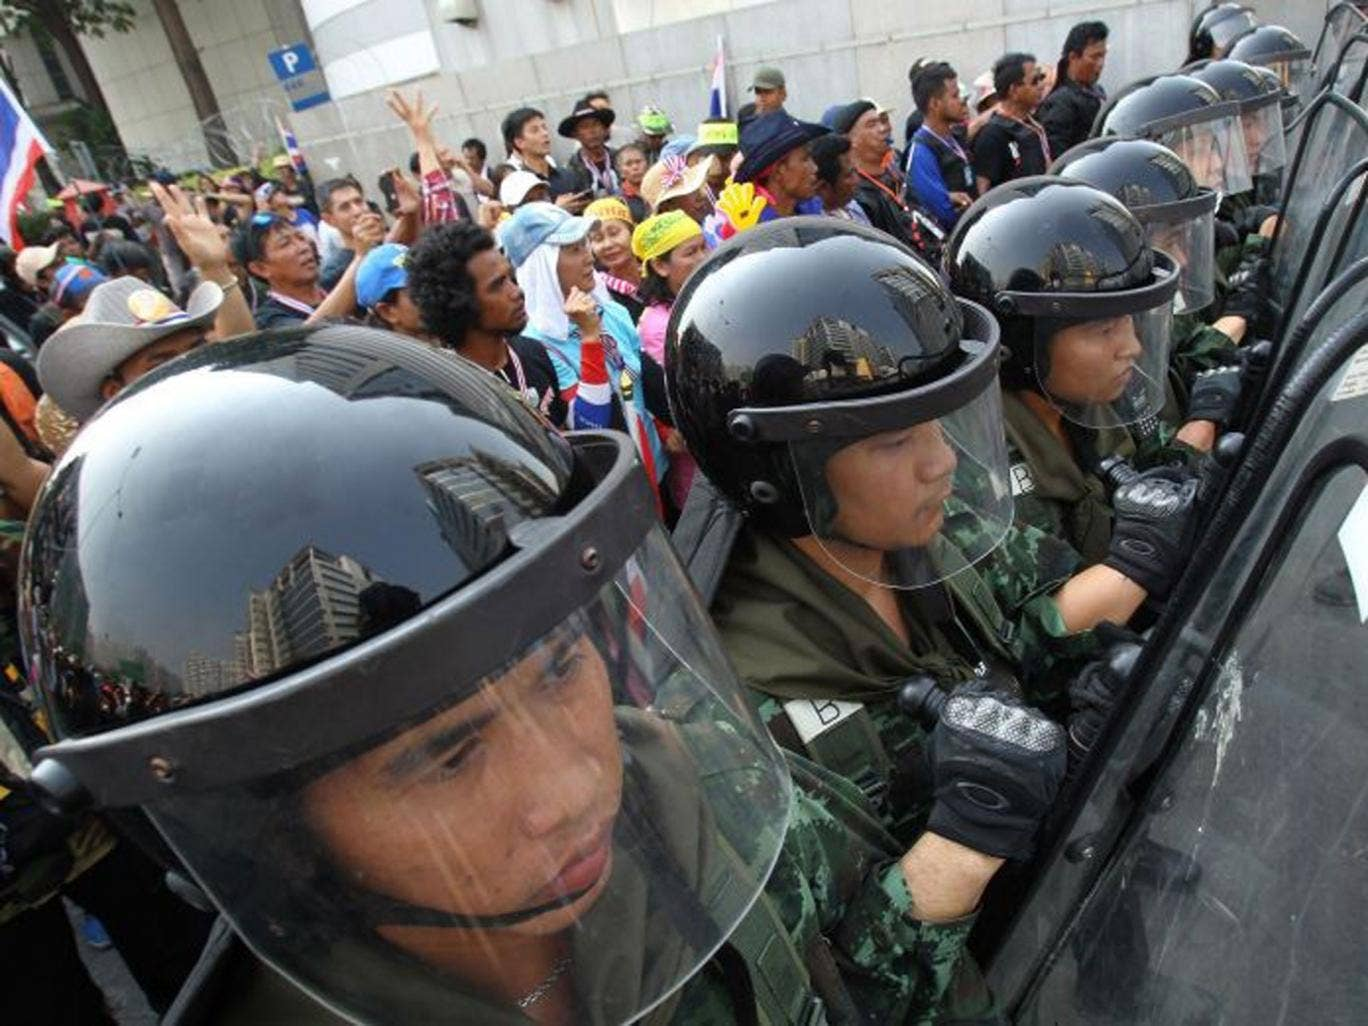 Thai soldiers stand guard to block anti-government protesters (left) during a rally outside the office of the permanent secretary for defense where Prime Minister Yingluck Shinawatra was reportedly working inside